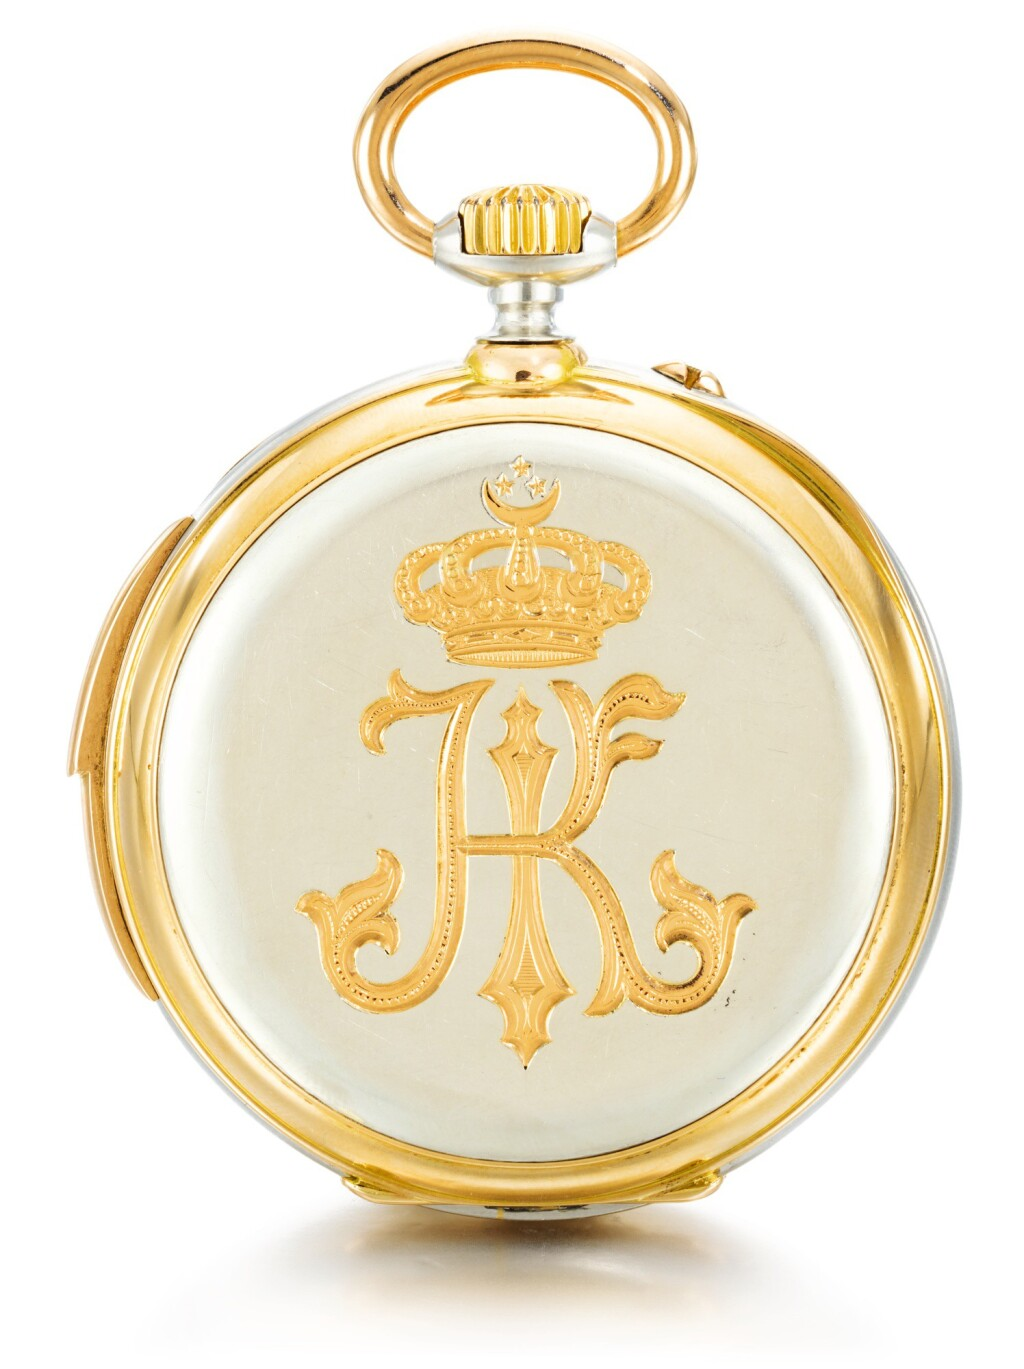 GIRARD-PERREGAUX, CHAUX-DE-FONDS | A VERY FINE AND POSSIBLY UNIQUE PINK GOLD AND PLATINUM OPEN-FACED MINUTE REPEATING KEYLESS LEVER WATCH, MADE FOR HH ISMAIL PASHA, KHEDIVE OF EGYPT AND SUDAN  1887, NO. 109141